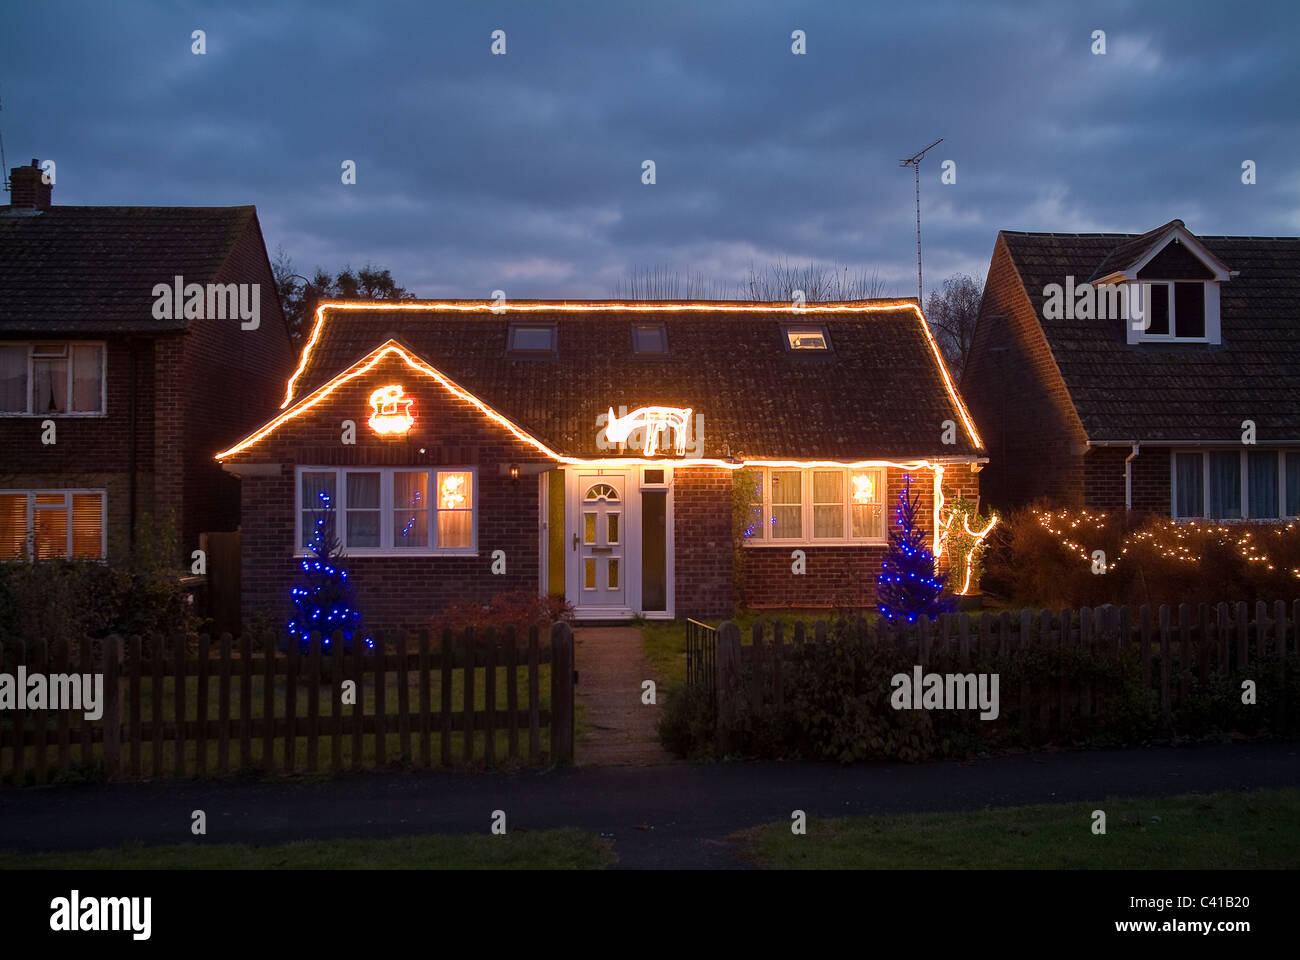 Bungalow Christmas Lights High Resolution Stock Photography And Images Alamy